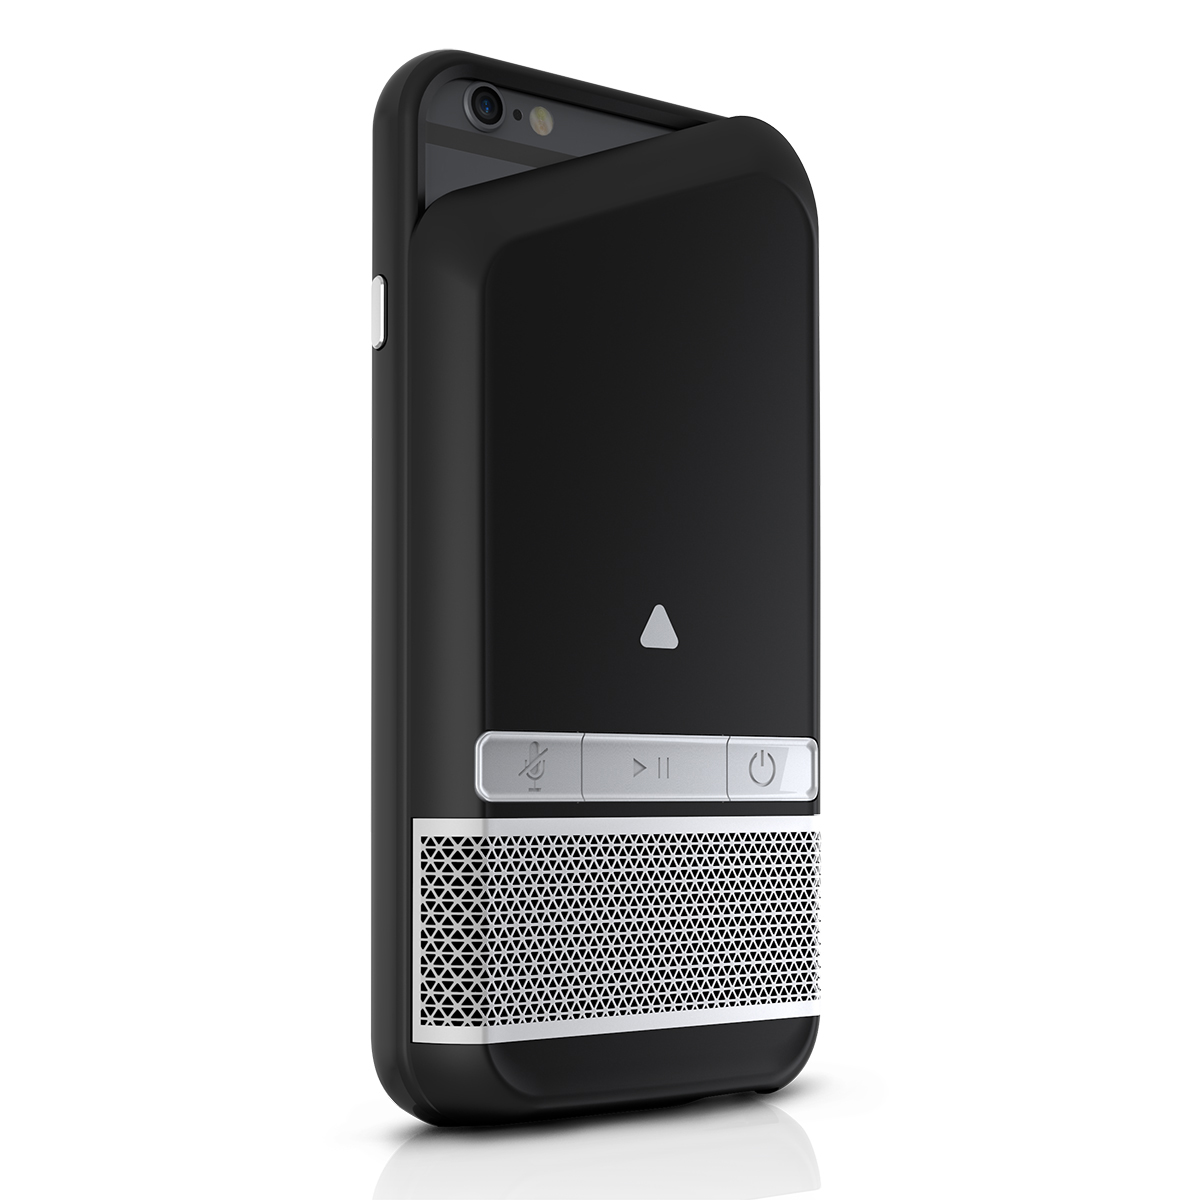 CES 2015: Pump up the volume with the new ZAGG Speaker Case for the iPhone 6